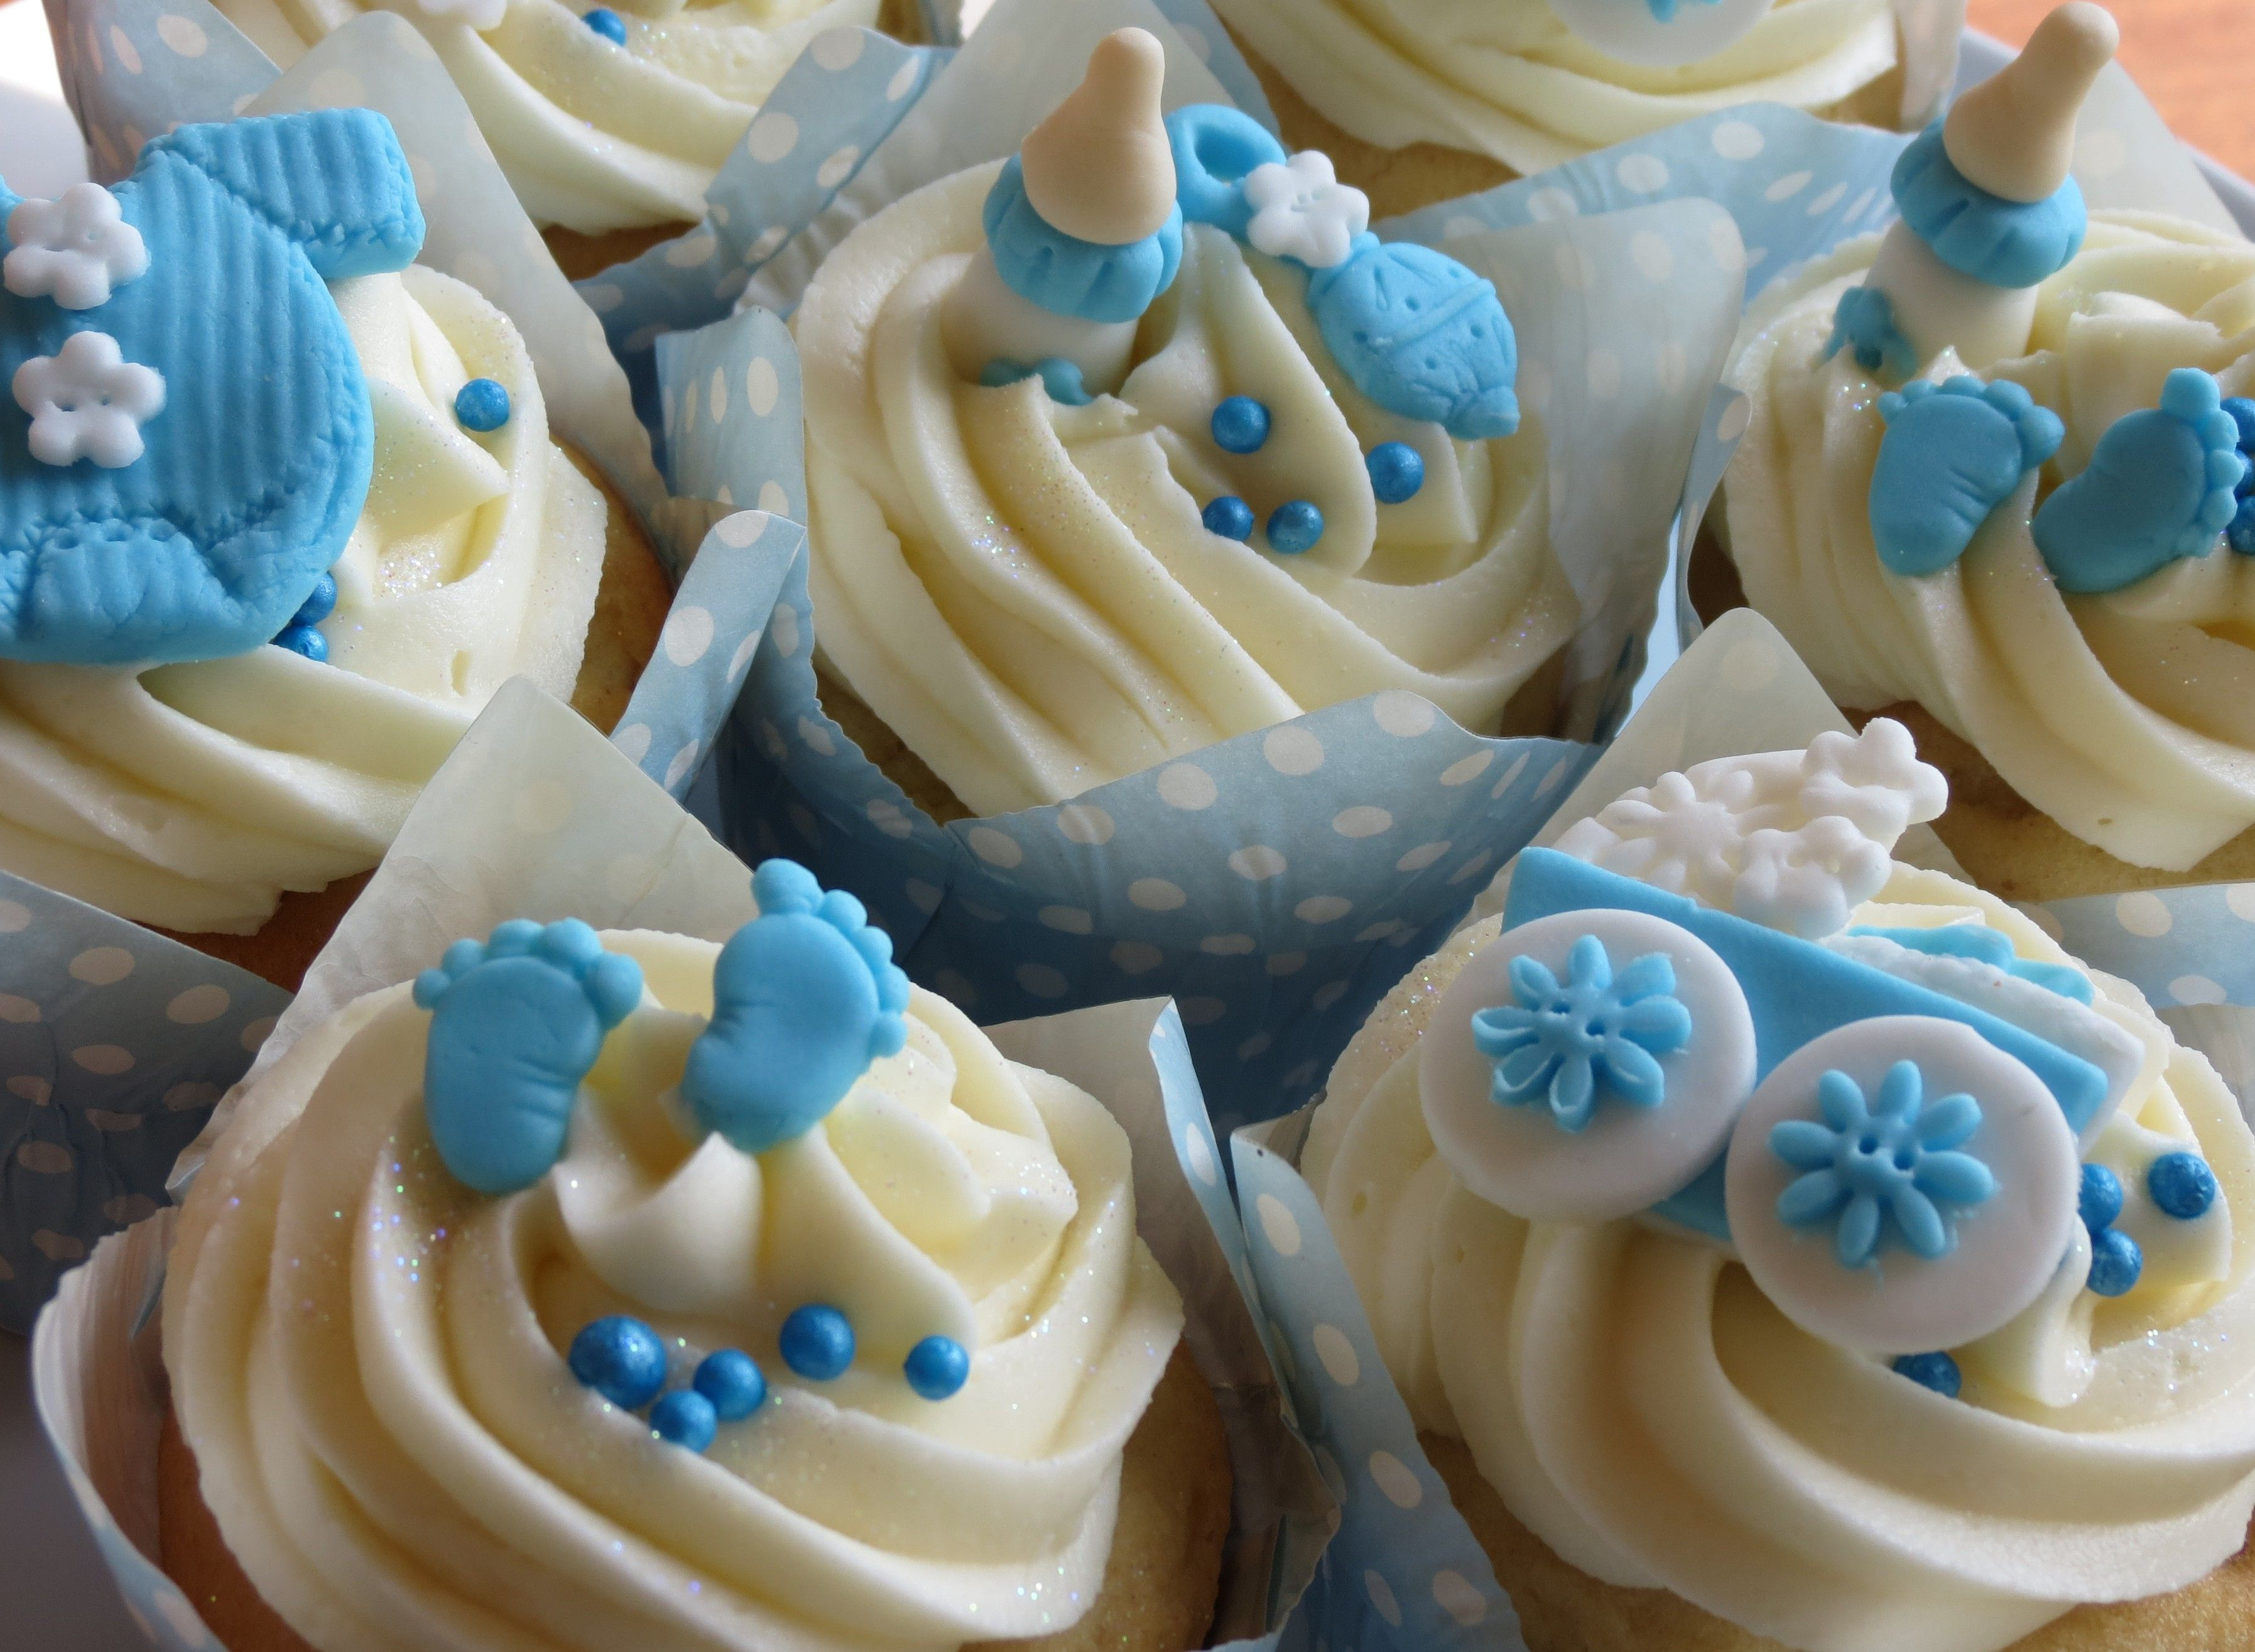 Baby Shower Cupcakes For A Boy Baby Shower Cakes For Boys Baby Shower Cupcakes For Boy Baby Boy Cupcakes